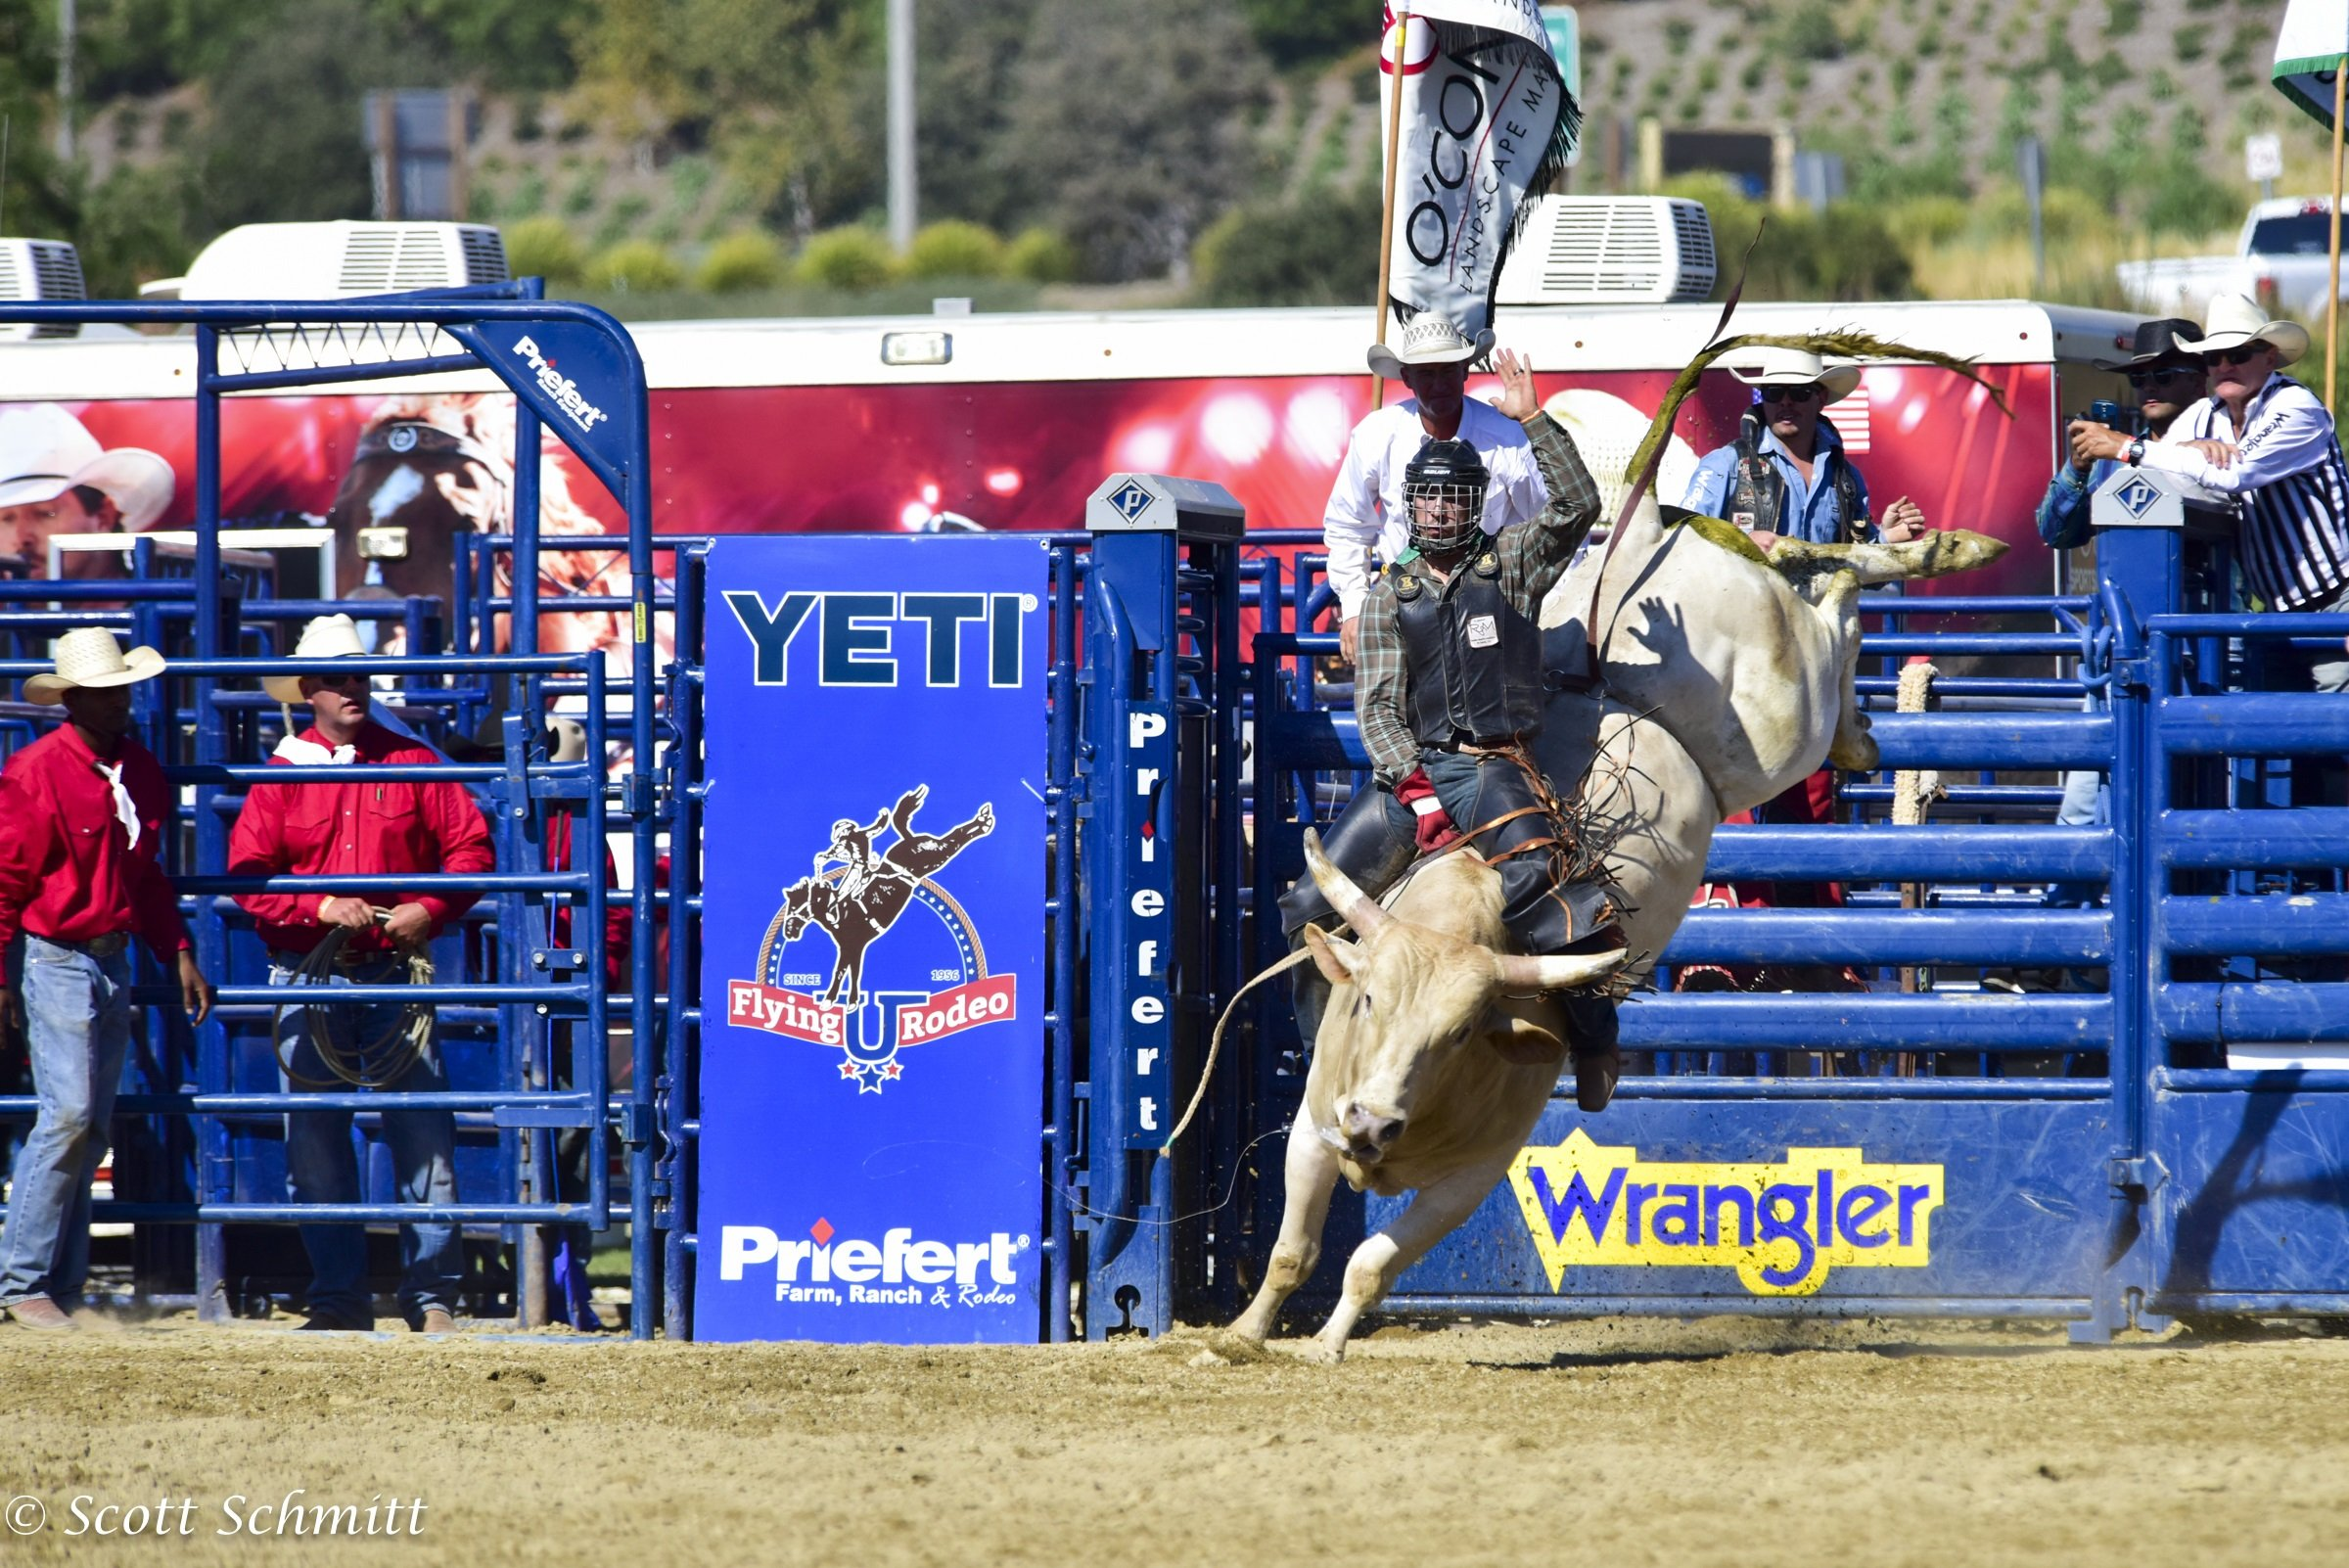 A Slice of Ranch Life in South Orange CountyRMV Rodeo returns with competition, concert and vendors - Visitors to the Rancho Mission Viejo Riding Park at San Juan Capistrano will be able to travel back to a time when Orange County was dotted with ranches and cowboys roamed the land during the 18th Annual Rancho Mission Viejo Rodeo. From watching the competition to shopping the event's various vendors, there will be lots to do.